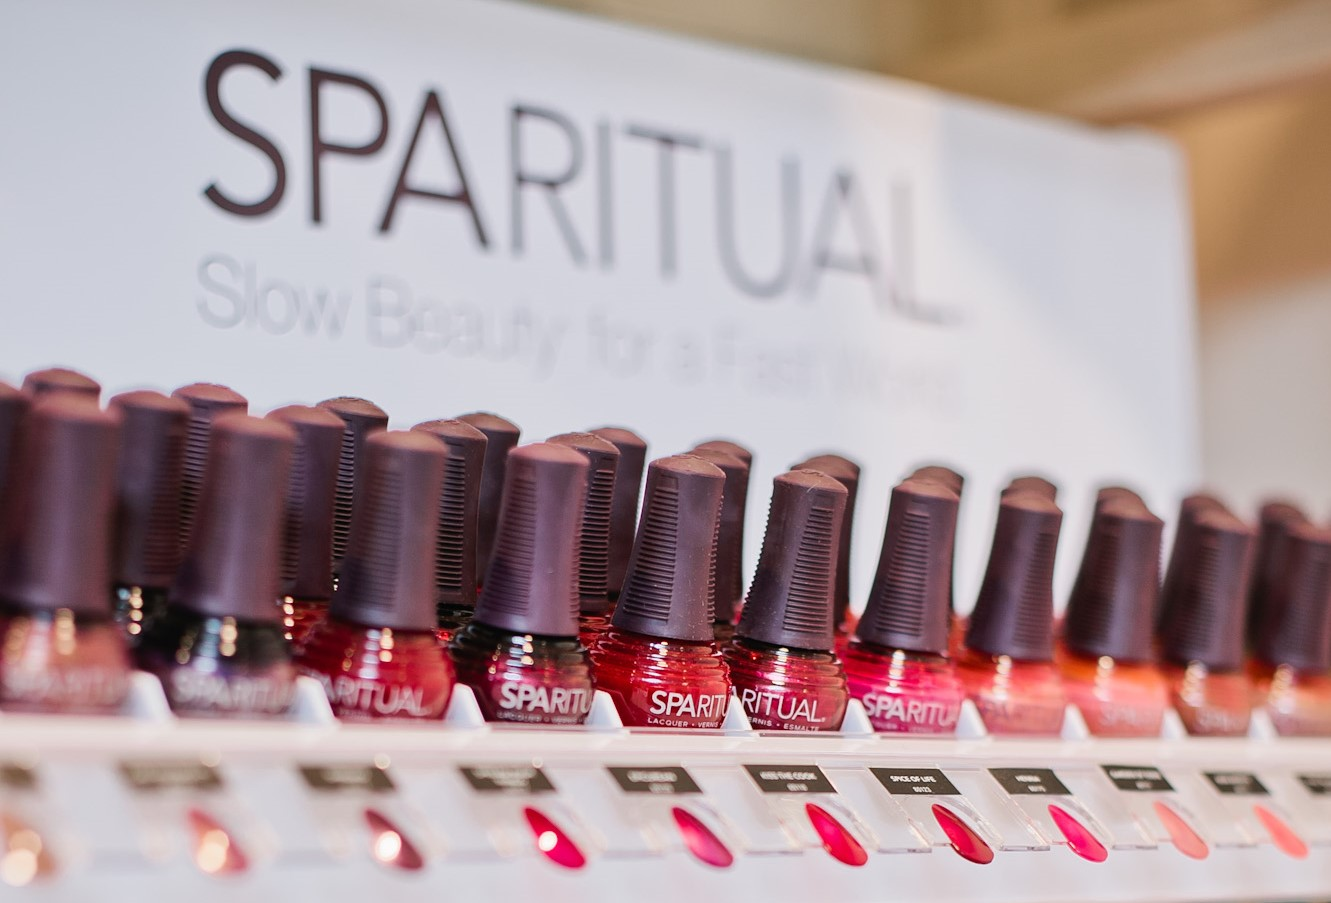 Spa Ritual nail polish stand with various colours